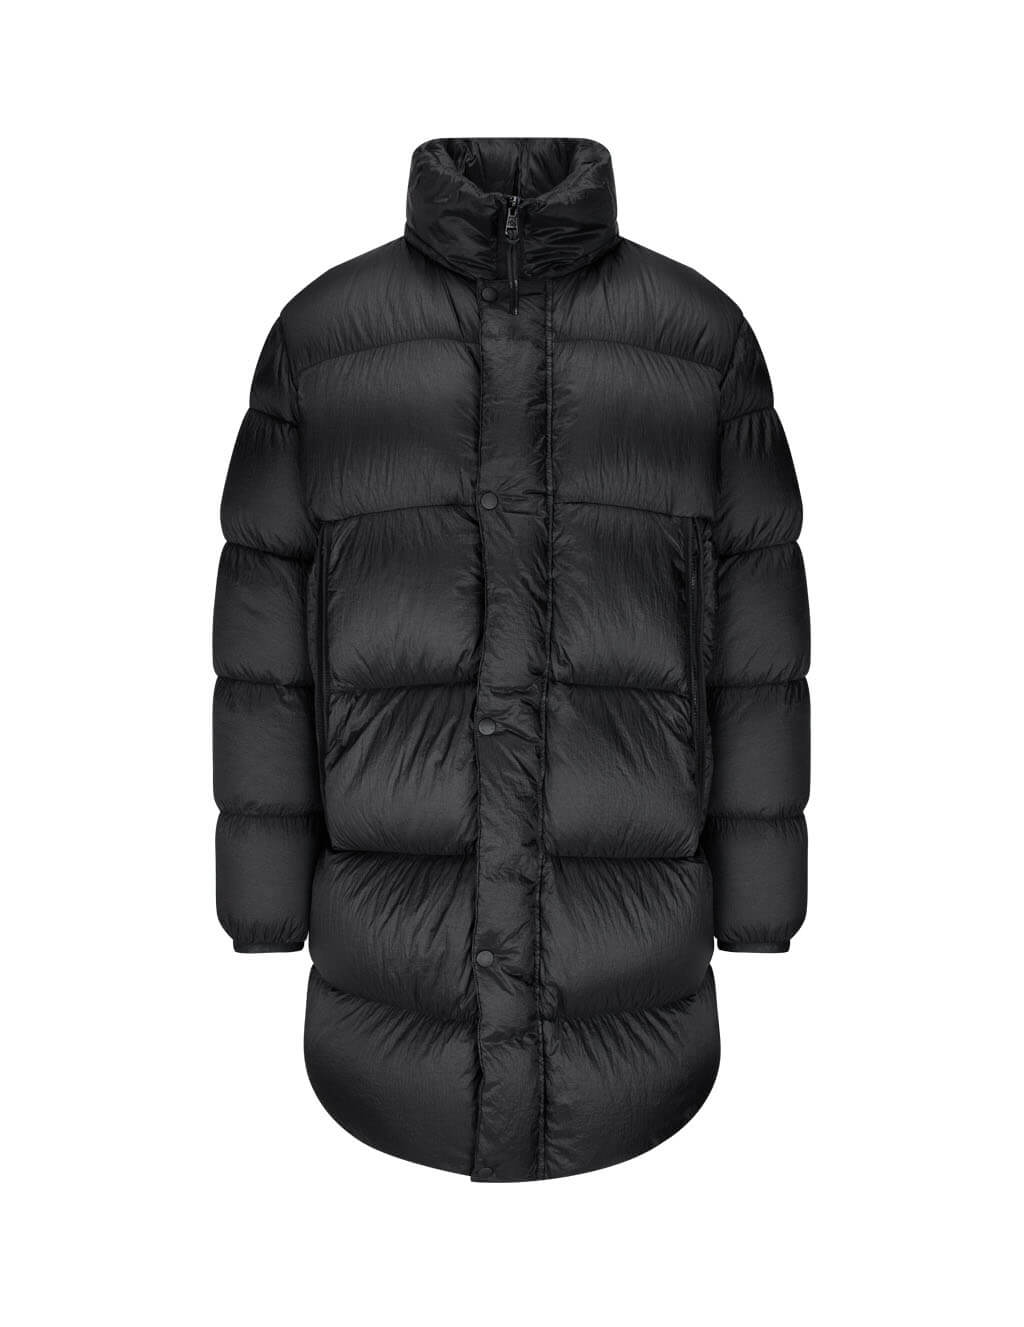 Men's Moncler Lechaud Long Parka Coat in Black. 0911C50960C0611999